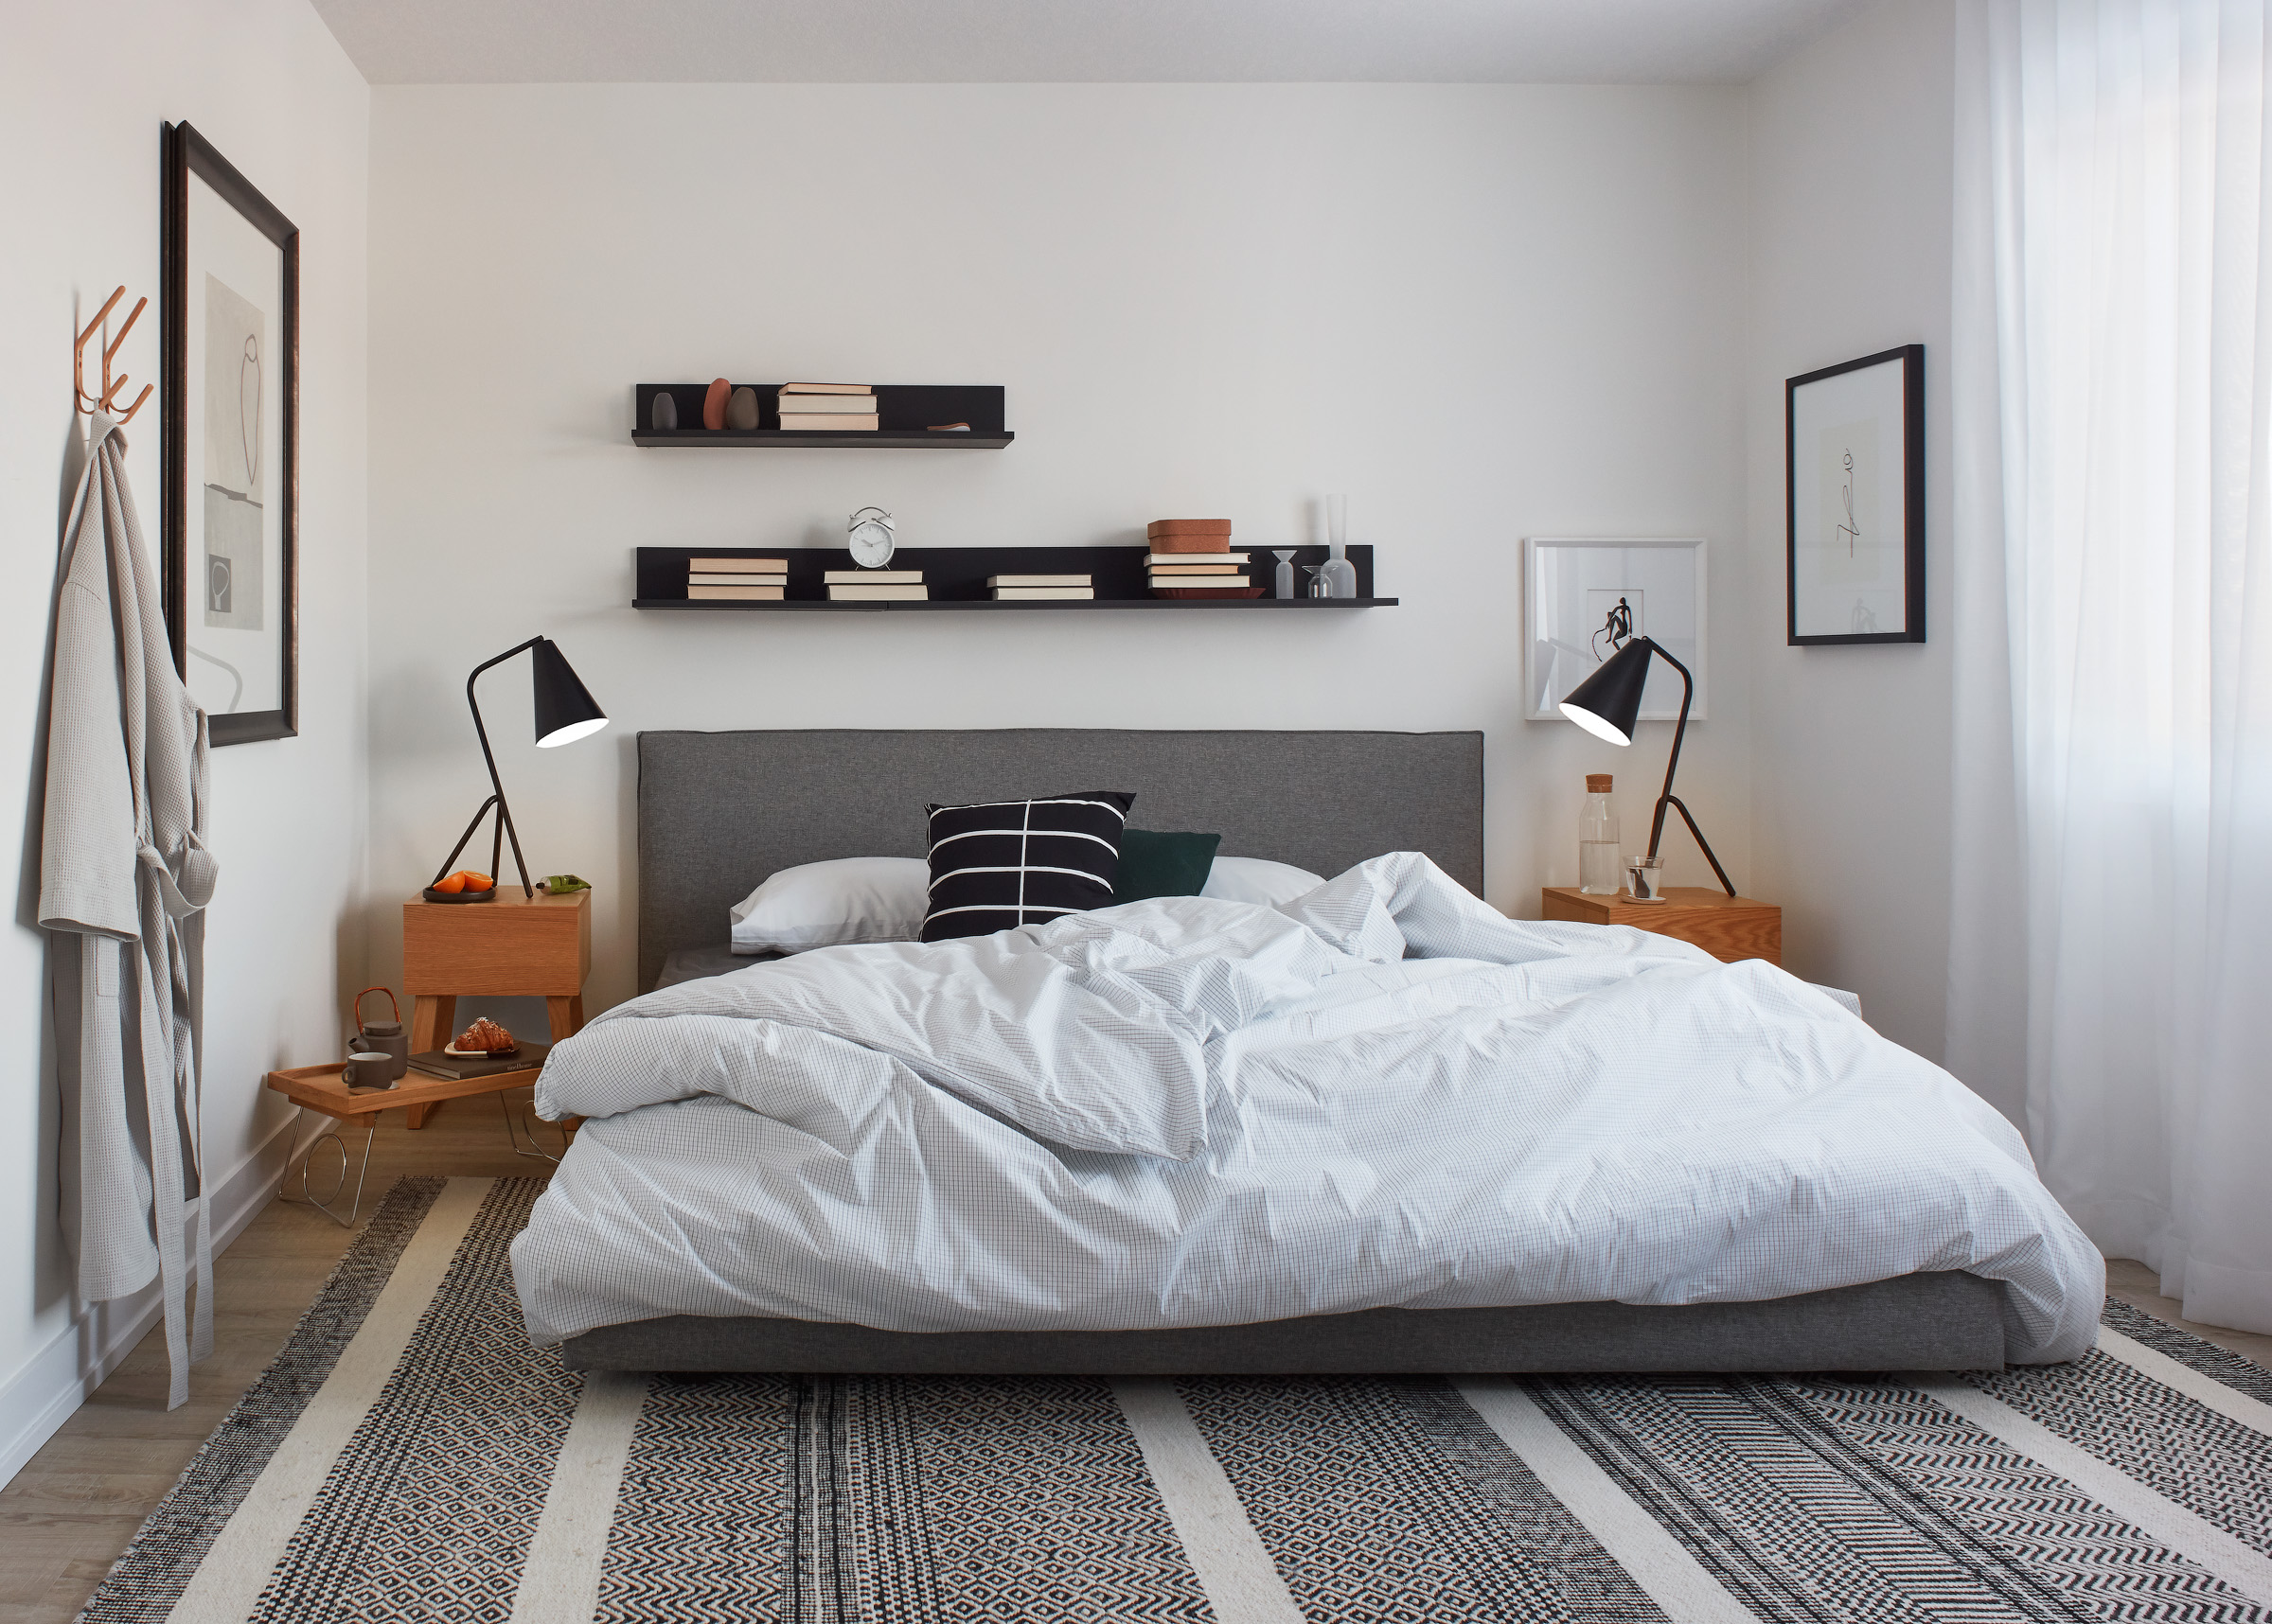 Modern Scandi bedroom with black and white colour scheme and artfully messy bed